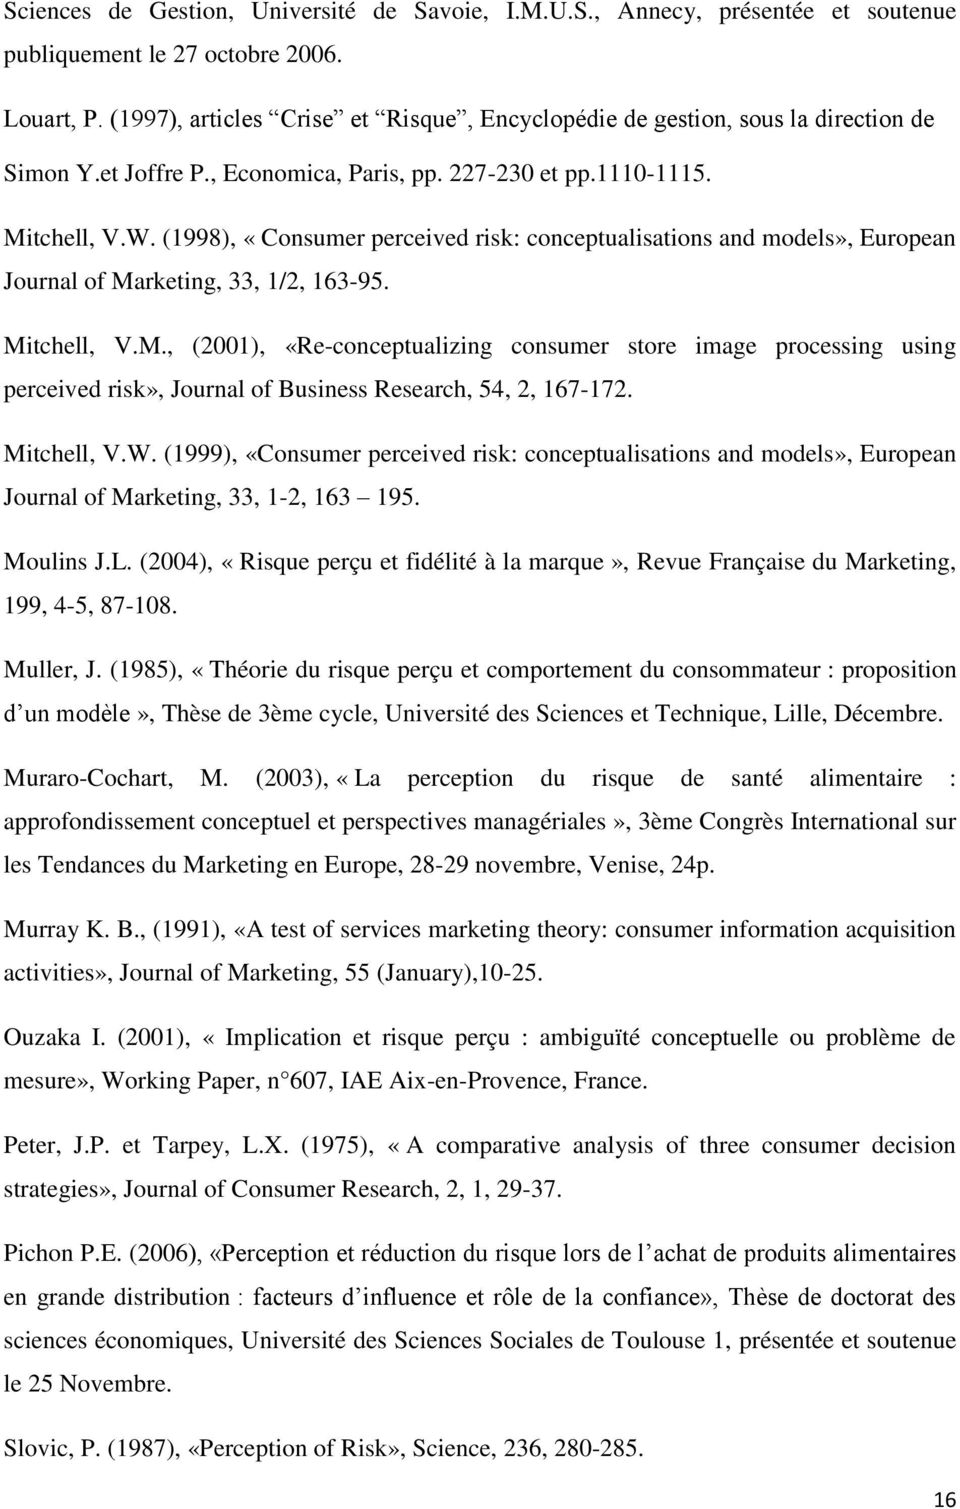 (1998), «Consumer perceived risk: conceptualisations and models», European Journal of Ma